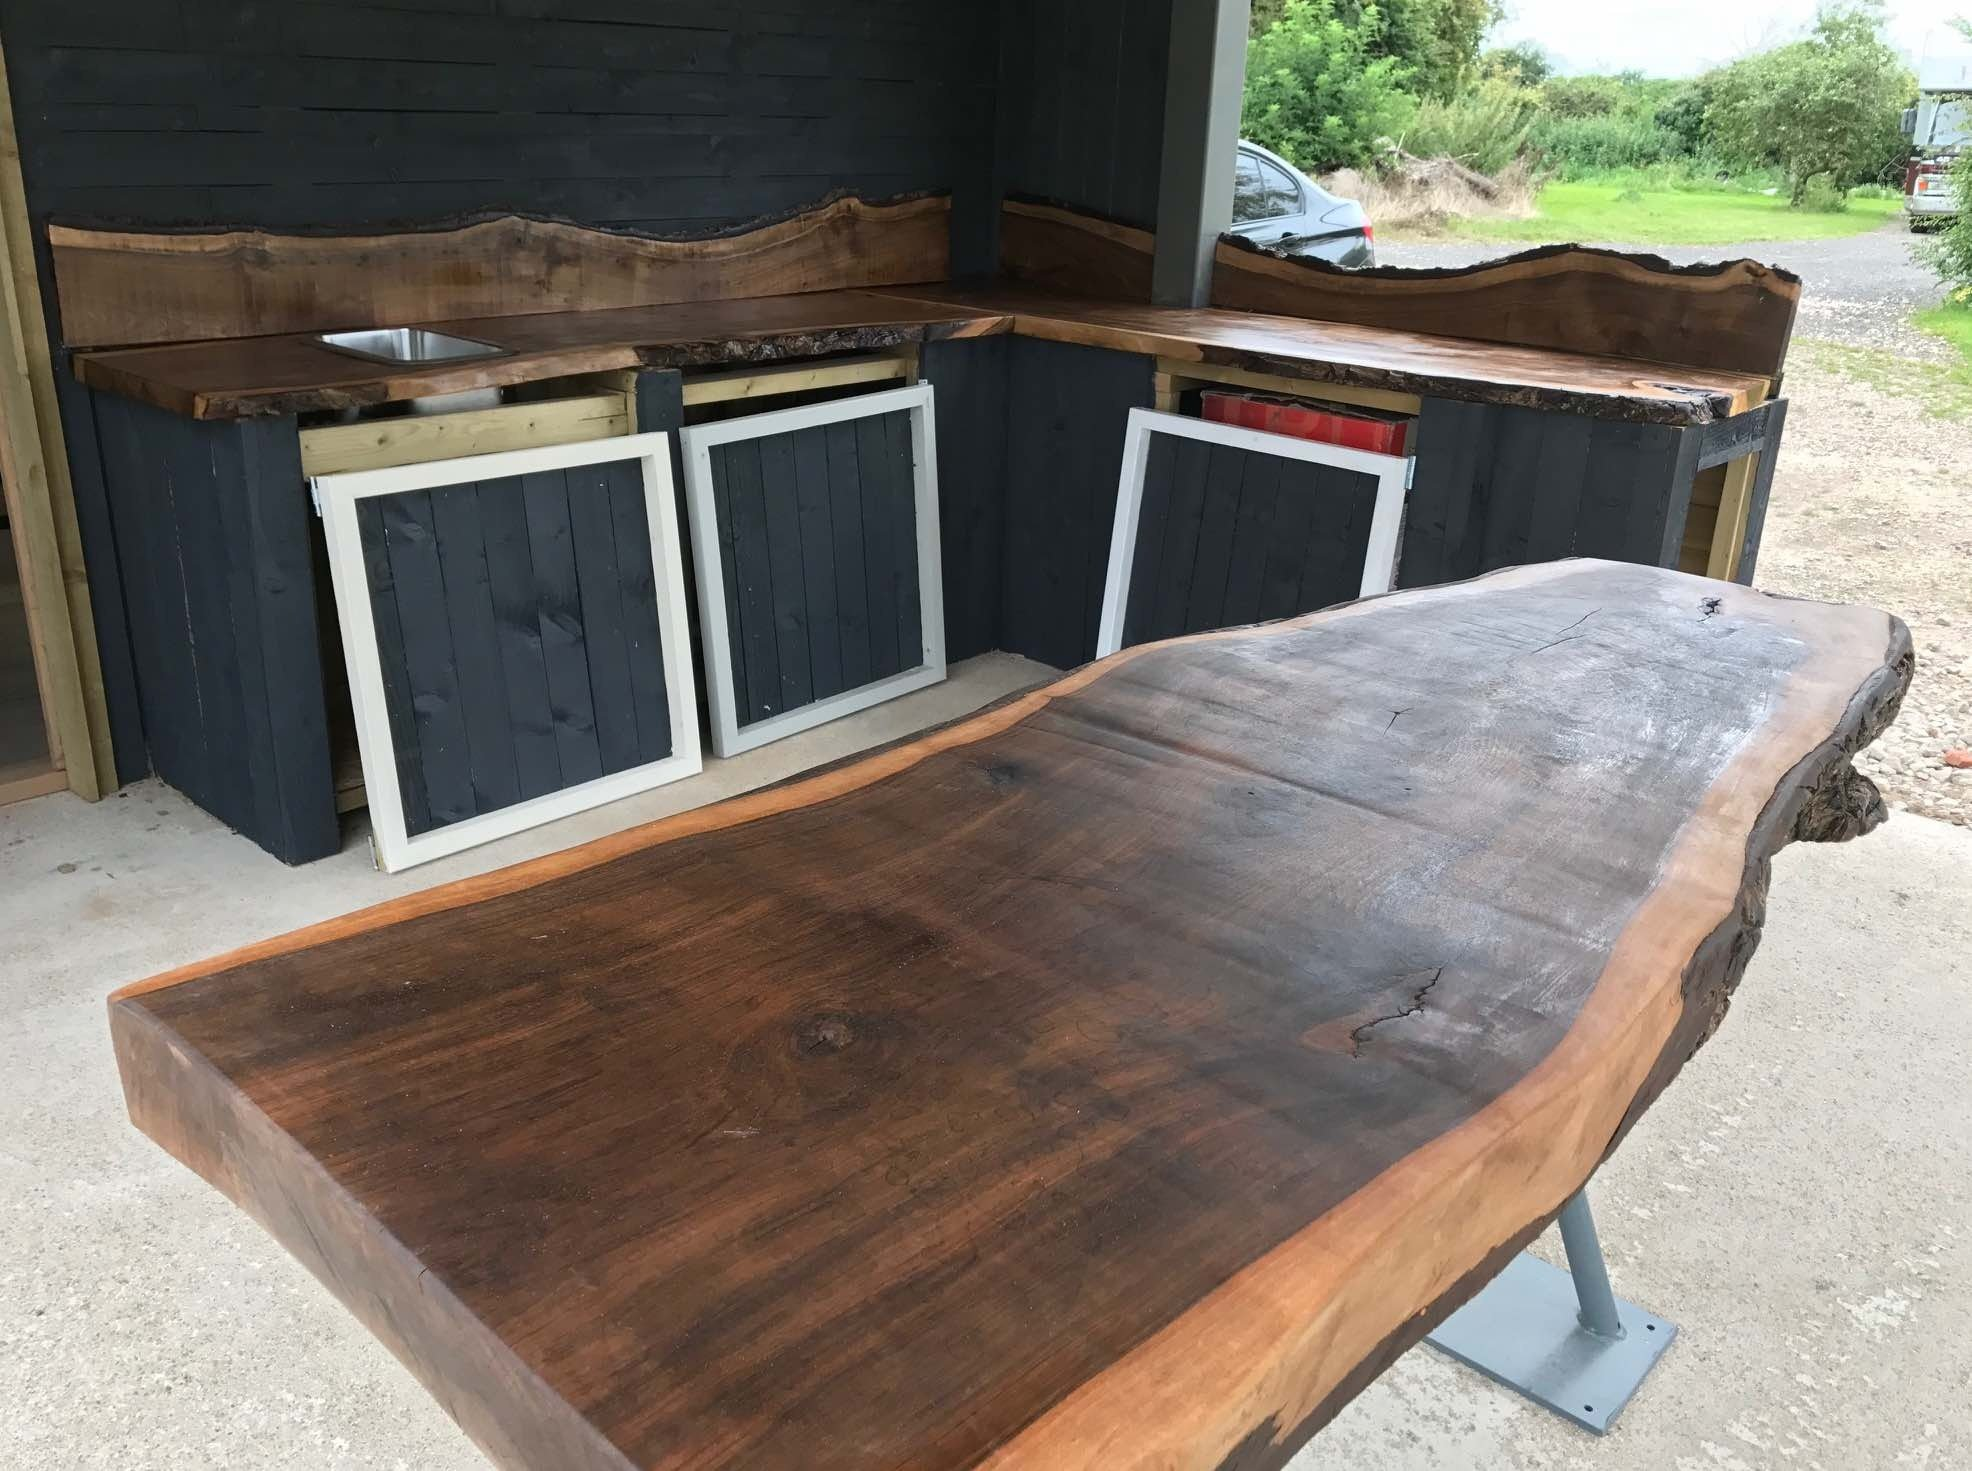 https://0501.nccdn.net/4_2/000/000/08a/ee5/Walnut-worksurface-1972x1471.jpg